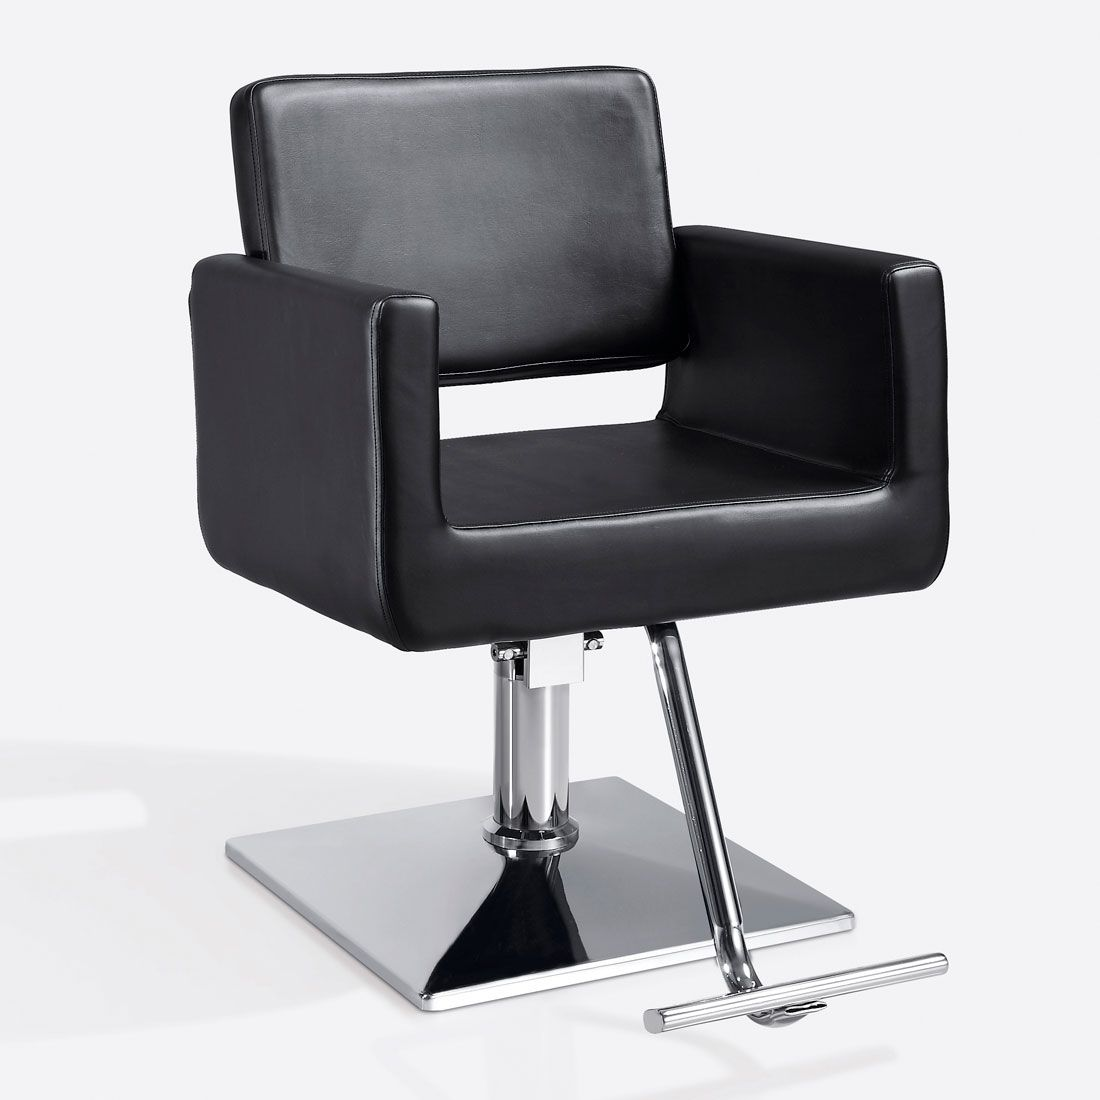 White hair salon chairs - Salon Chair For Hairstyling